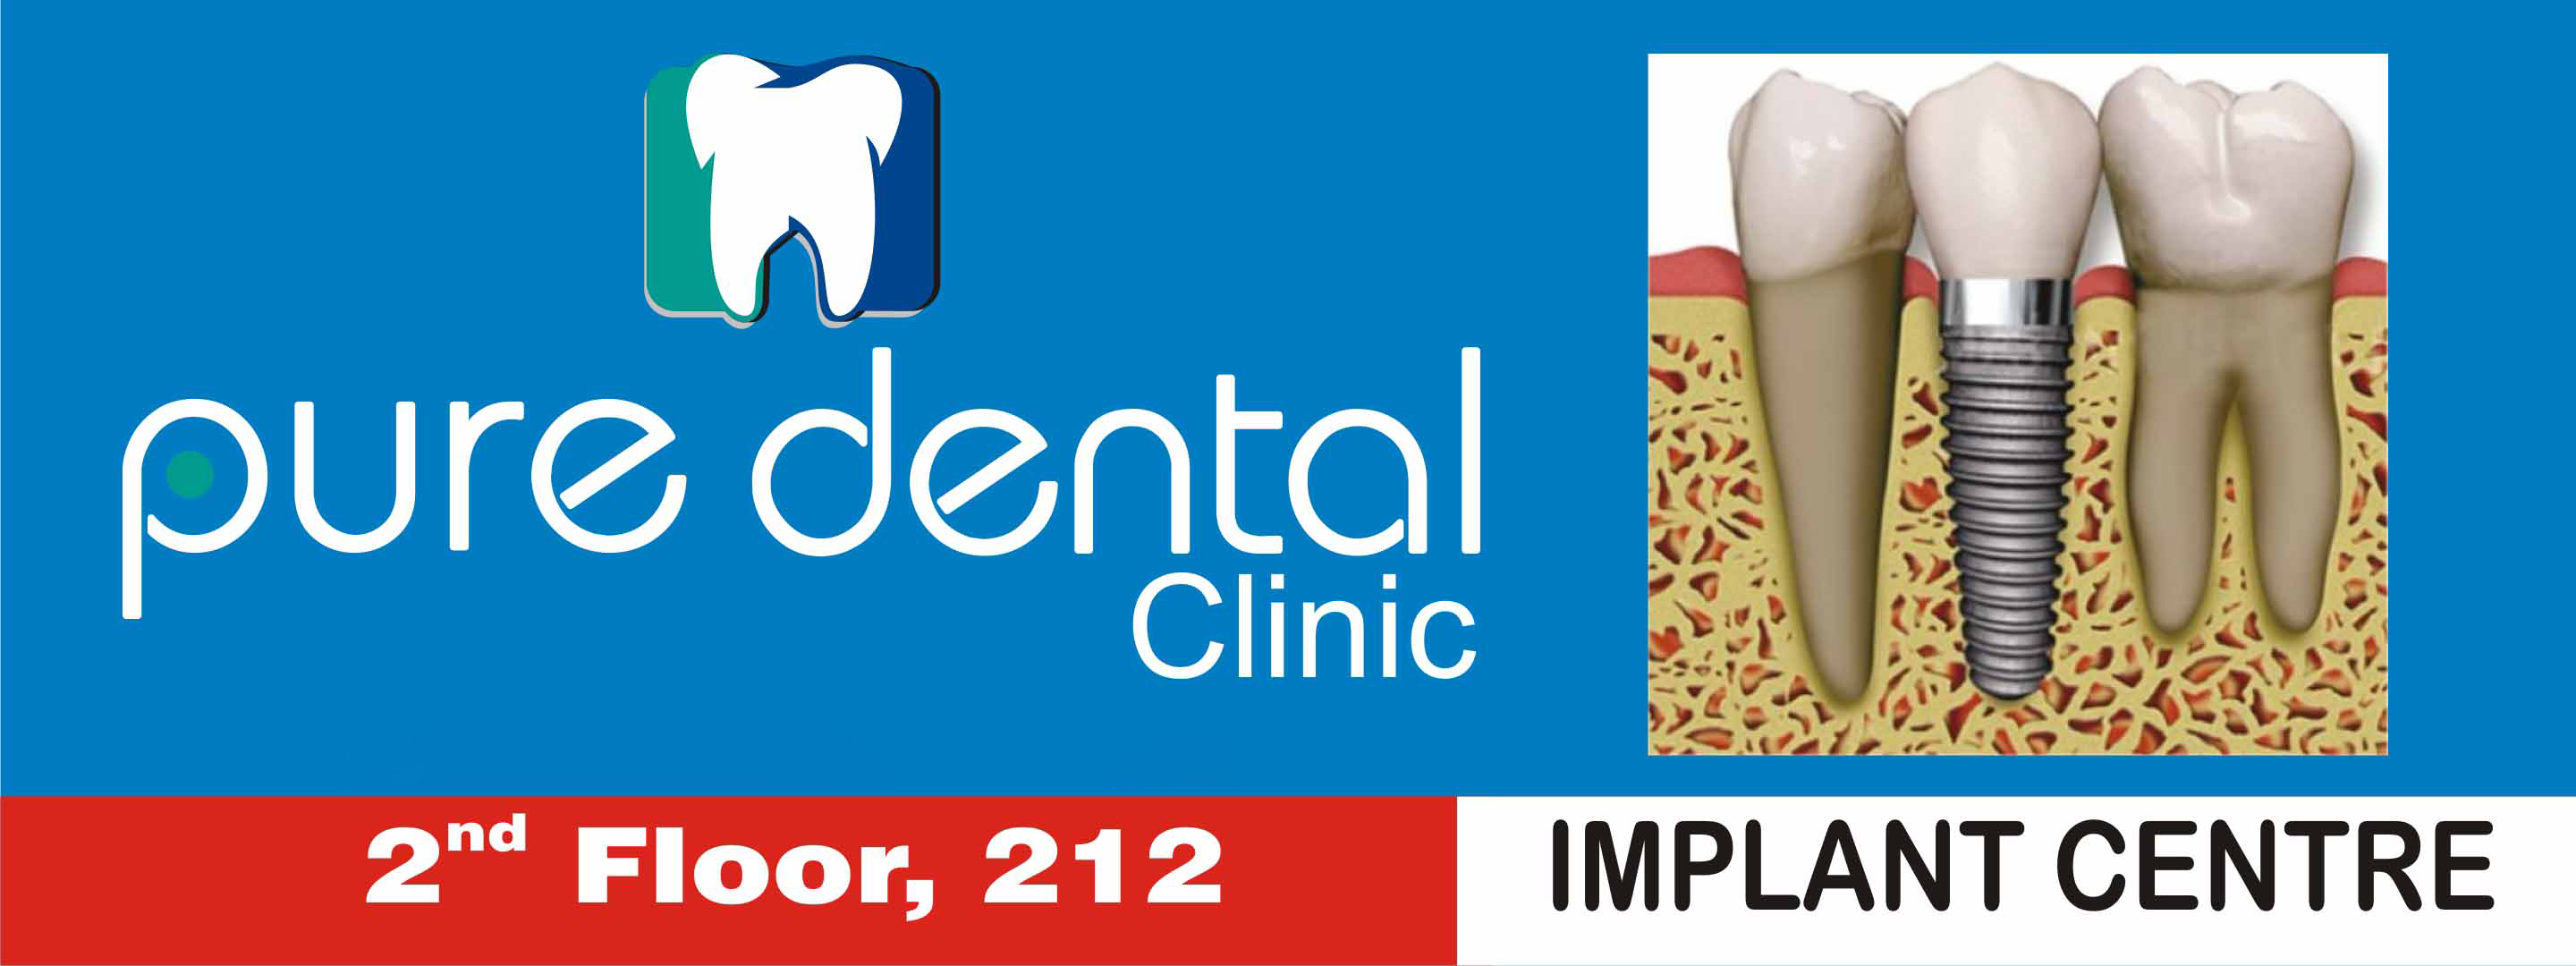 Pure Dental Clinic and Implant Centre